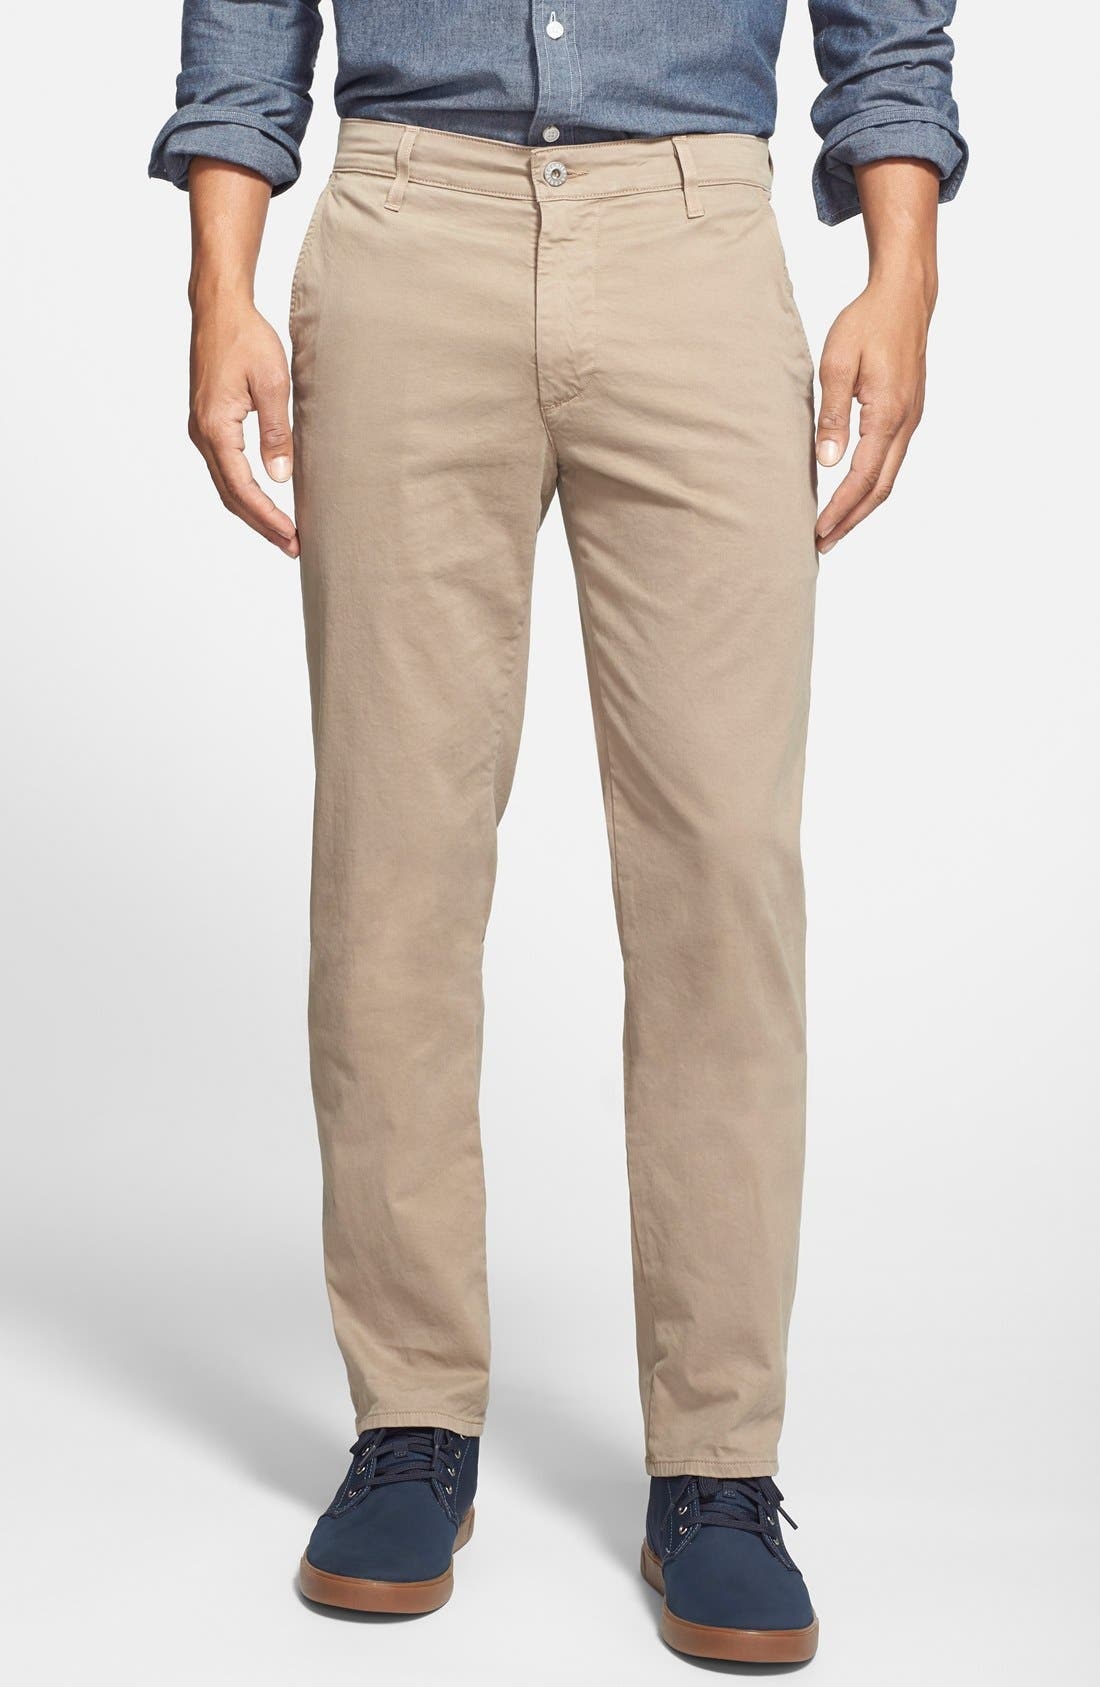 'The Lux' Tailored Straight Leg Chinos,                         Main,                         color, Wheat